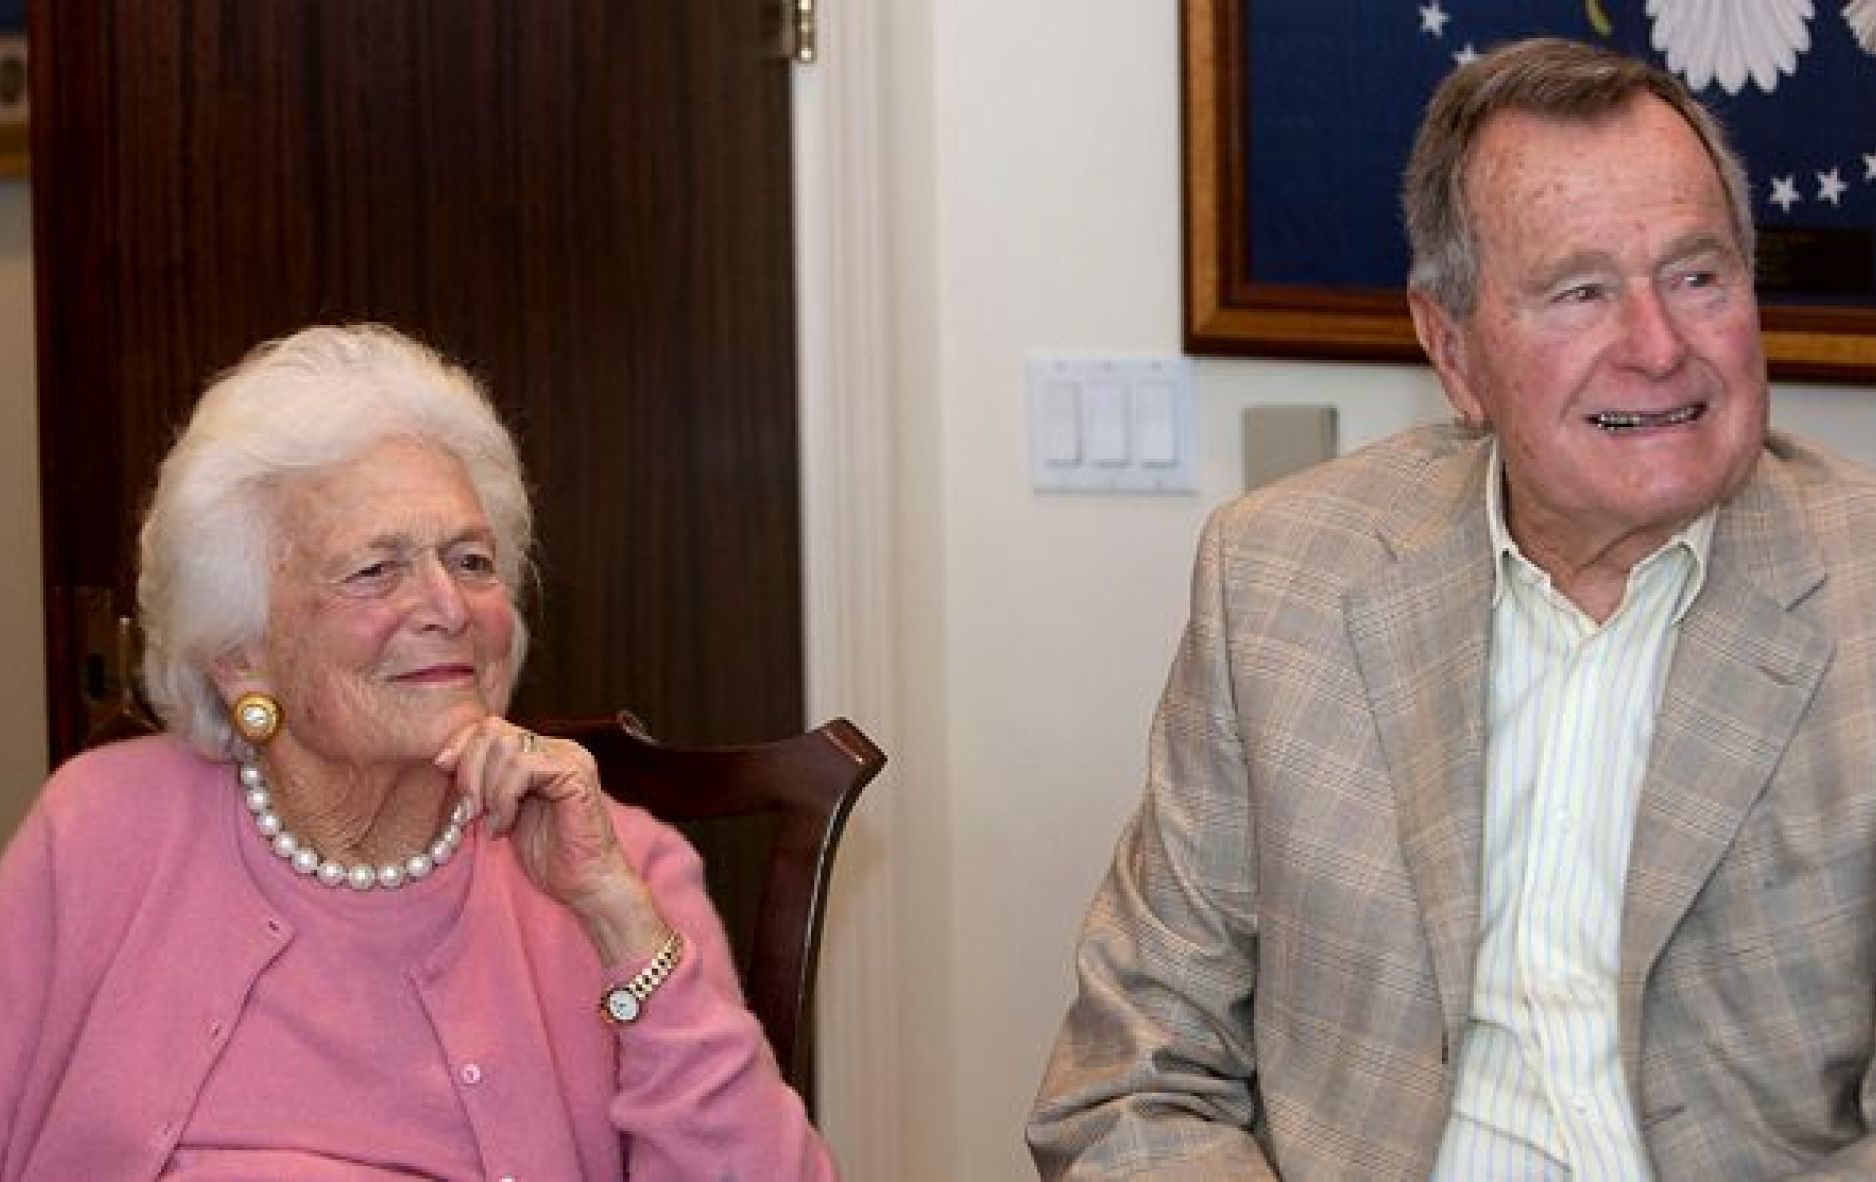 Westlake Legal Group barbara-bush-1 'Matriarch' author describes touching last moment between George and Barbara Bush Sam Dorman fox-news/topic/fox-news-flash fox news fnc/politics fnc article afc9f66e-f81c-5298-84bc-3ac74fbbba91